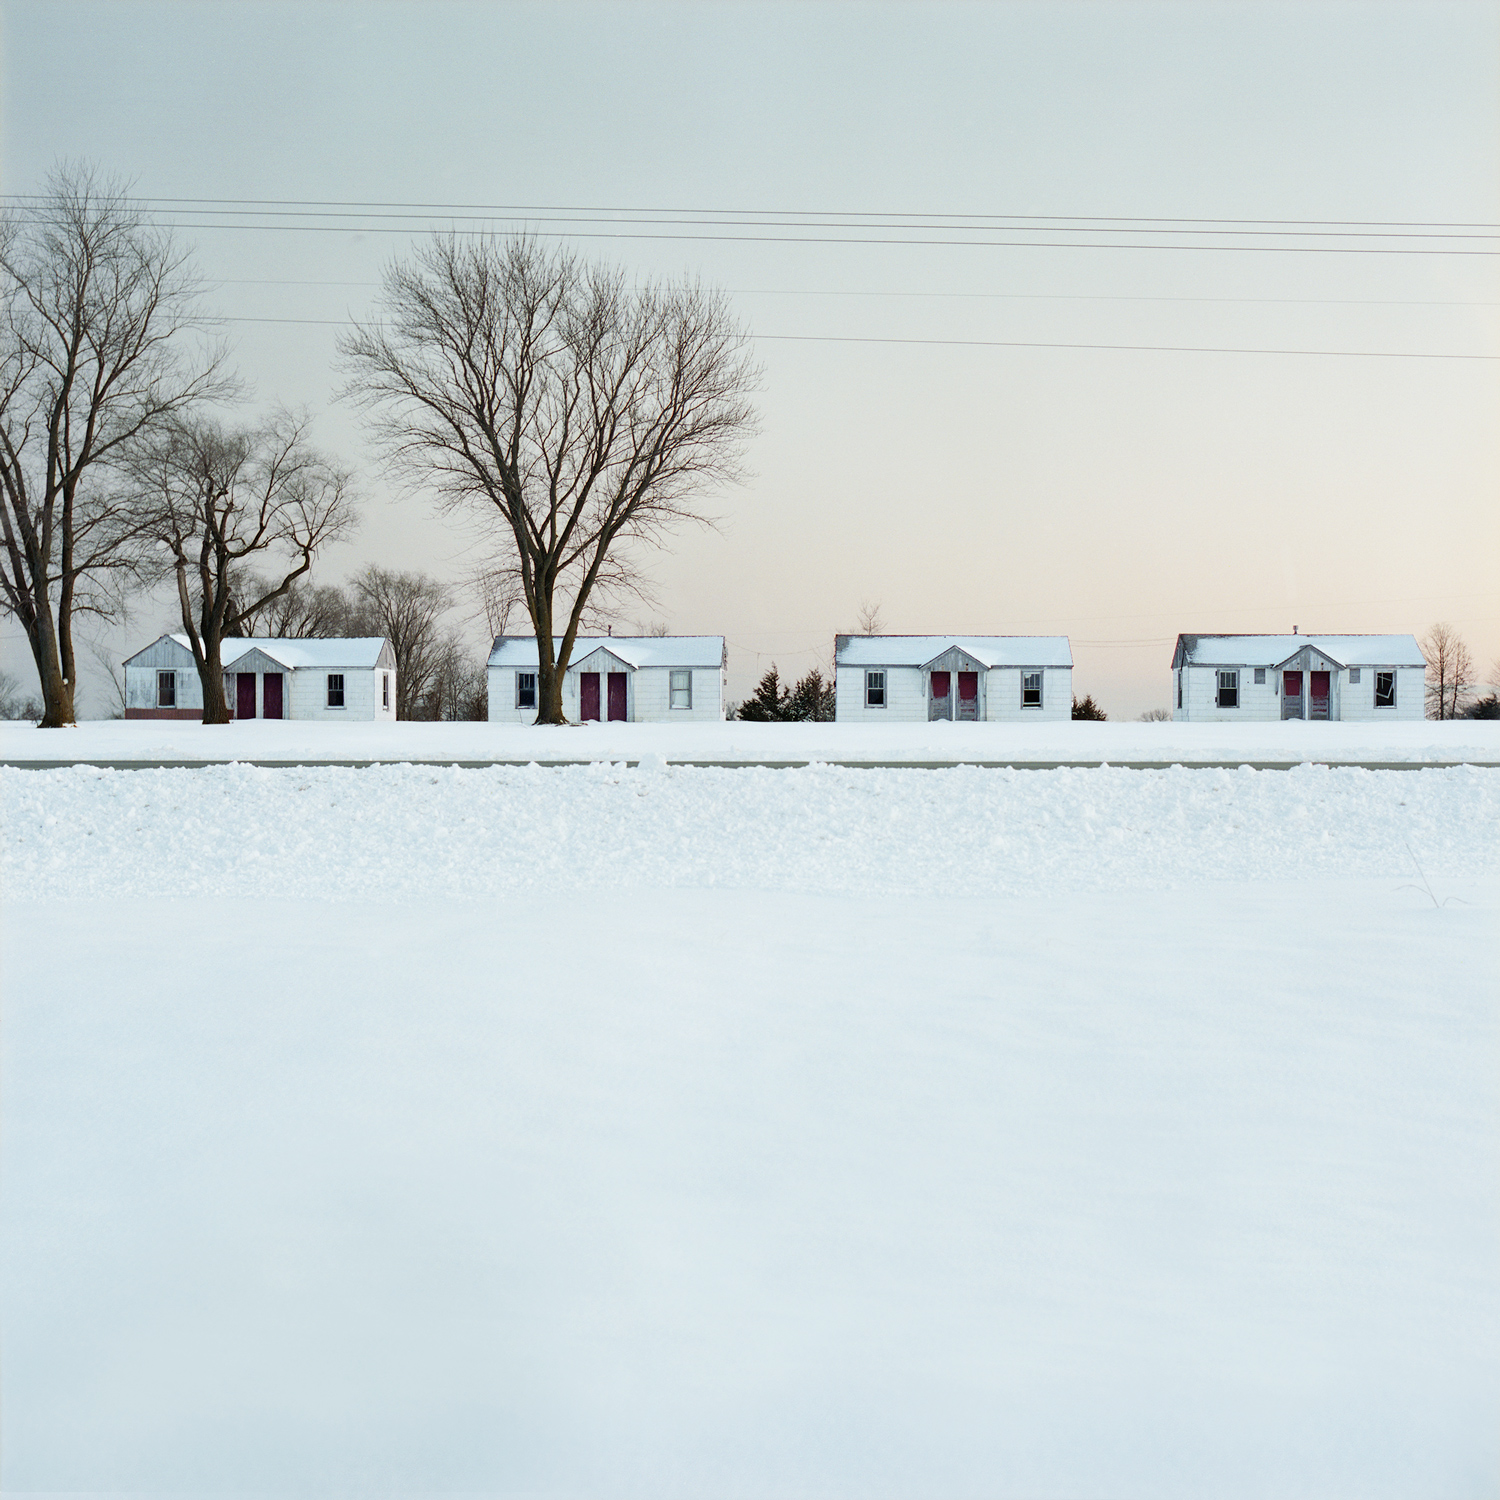 houses in snow